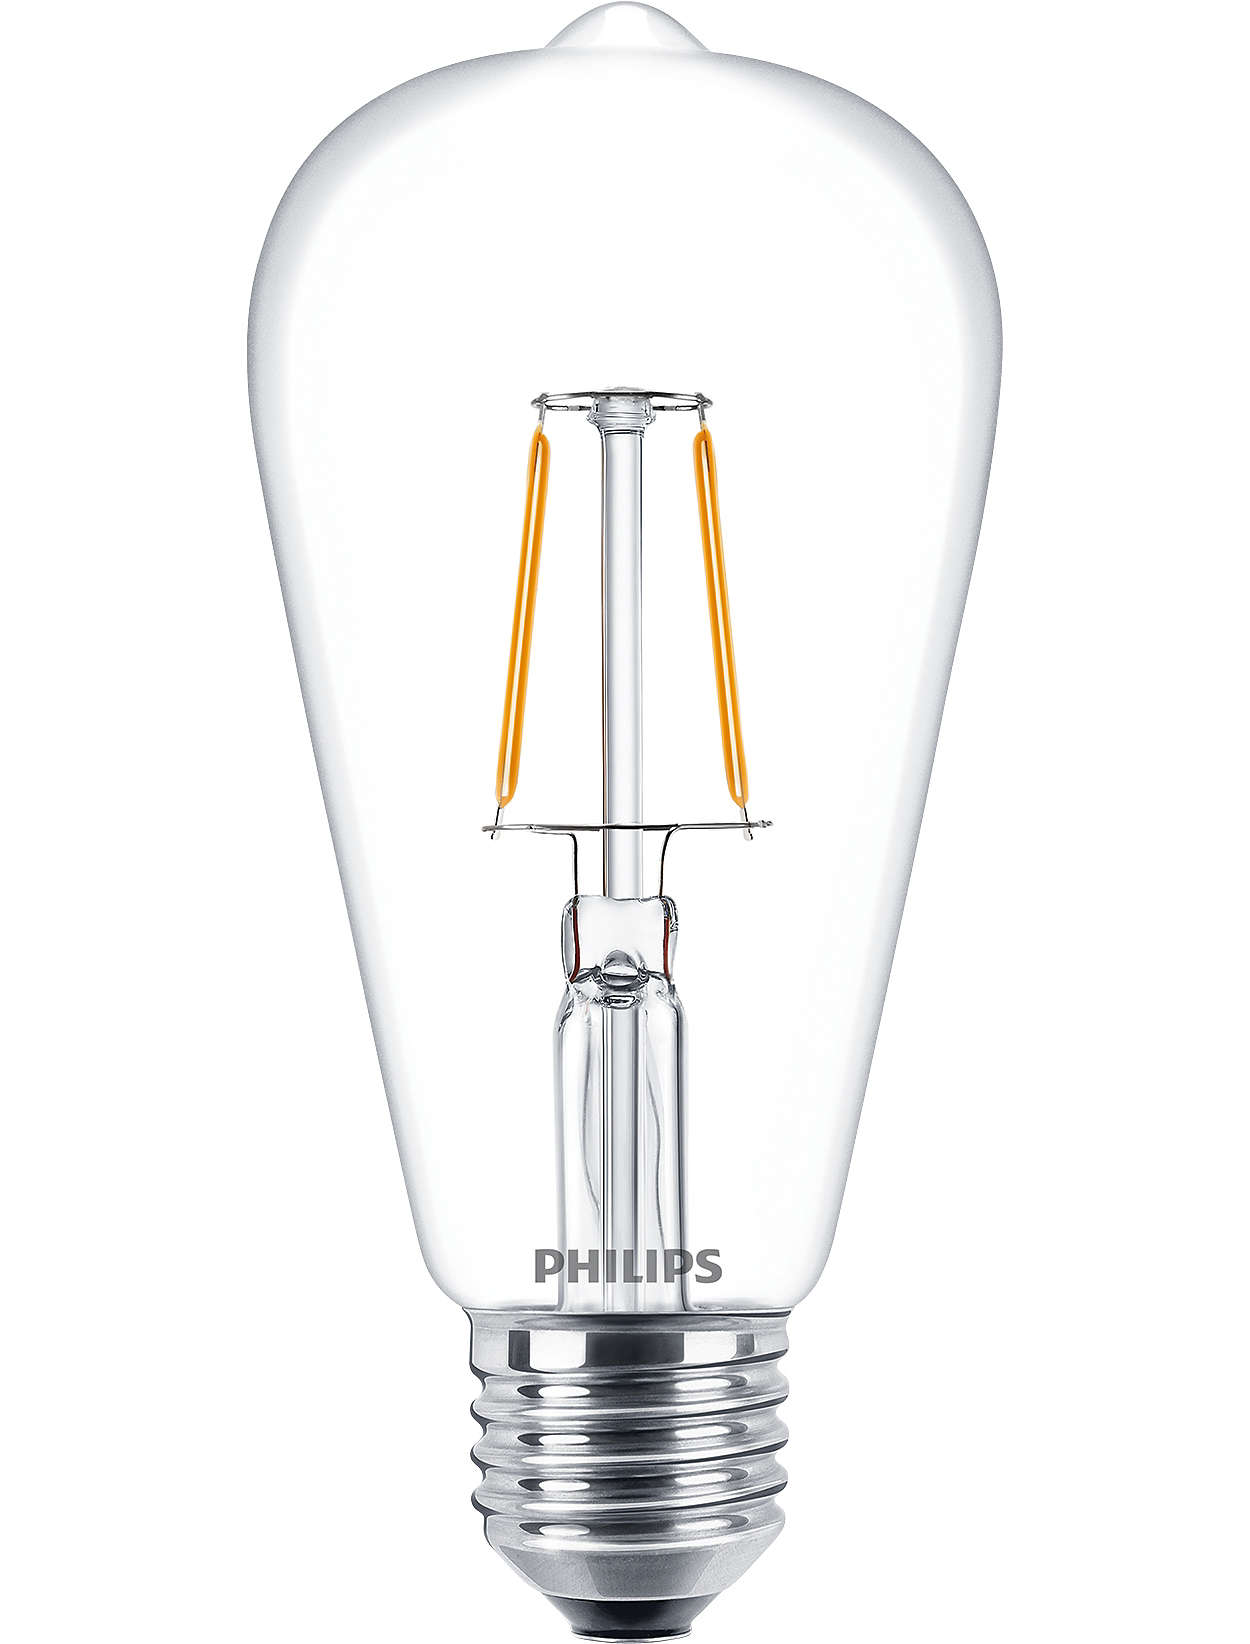 Classic look & feel and LED filament for decorative lighting